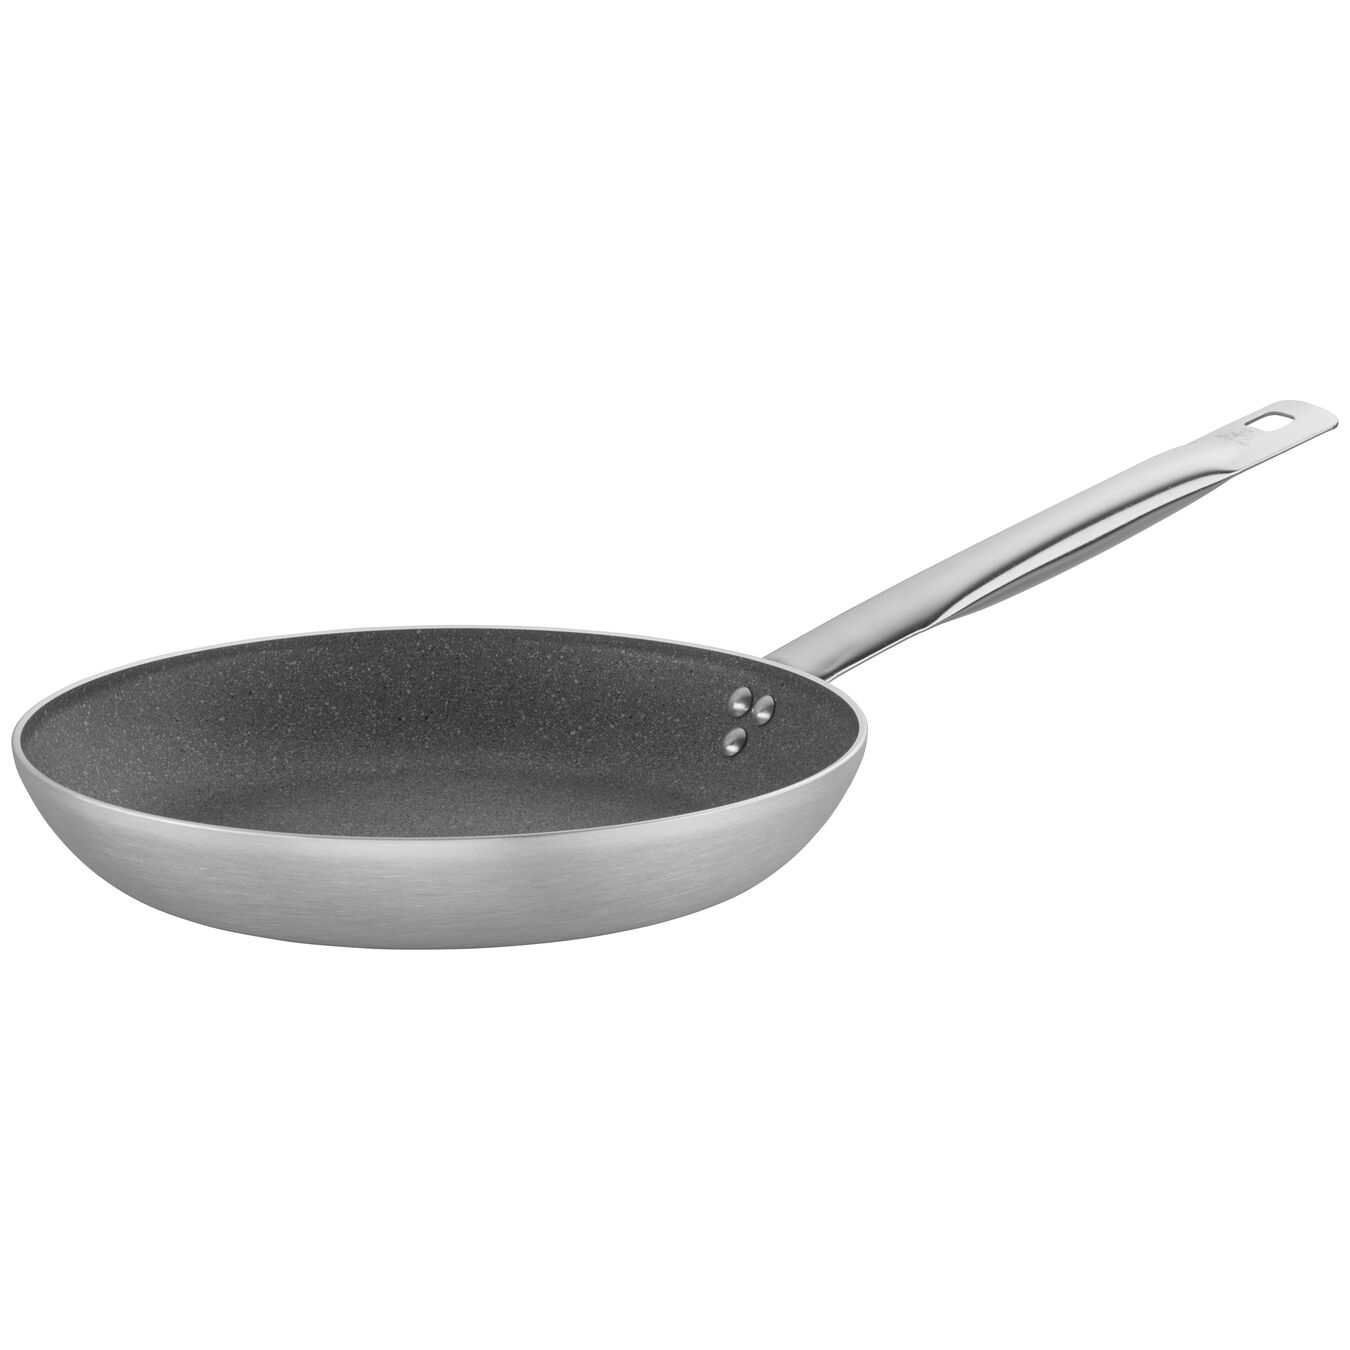 28 cm / 11 inch Frying pan,,large 1